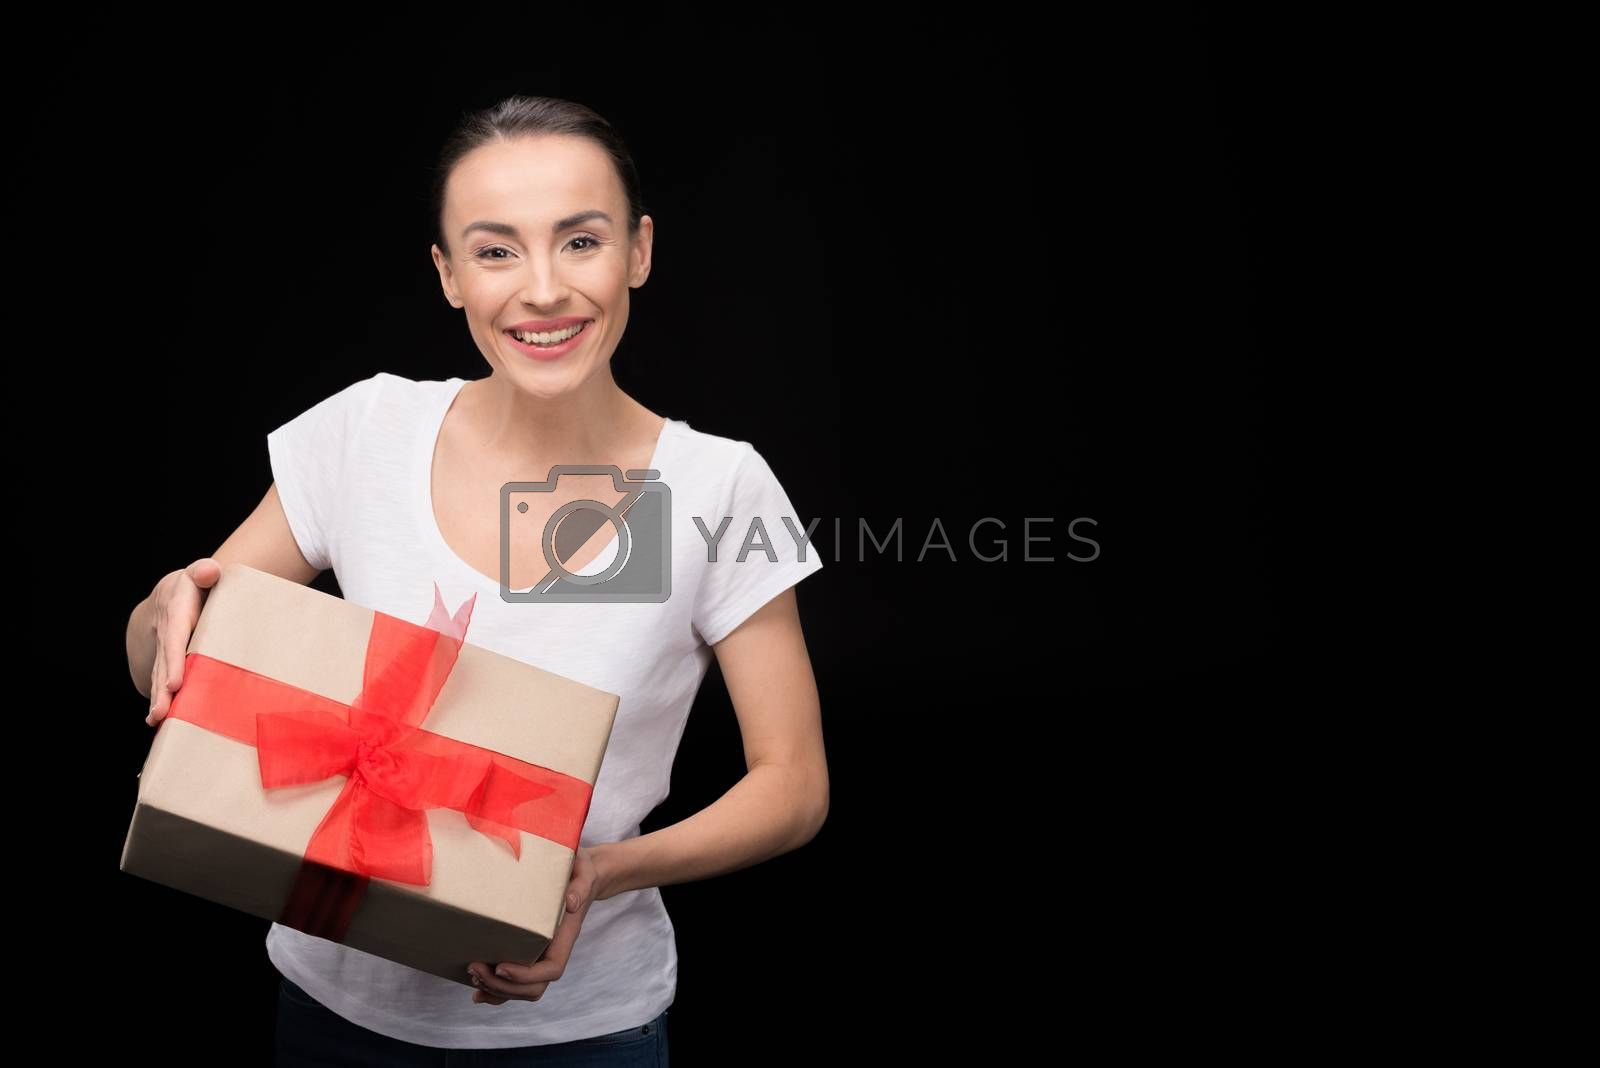 portrait of smiling woman holding gift in hands and looking to camera on black, international womens day concept